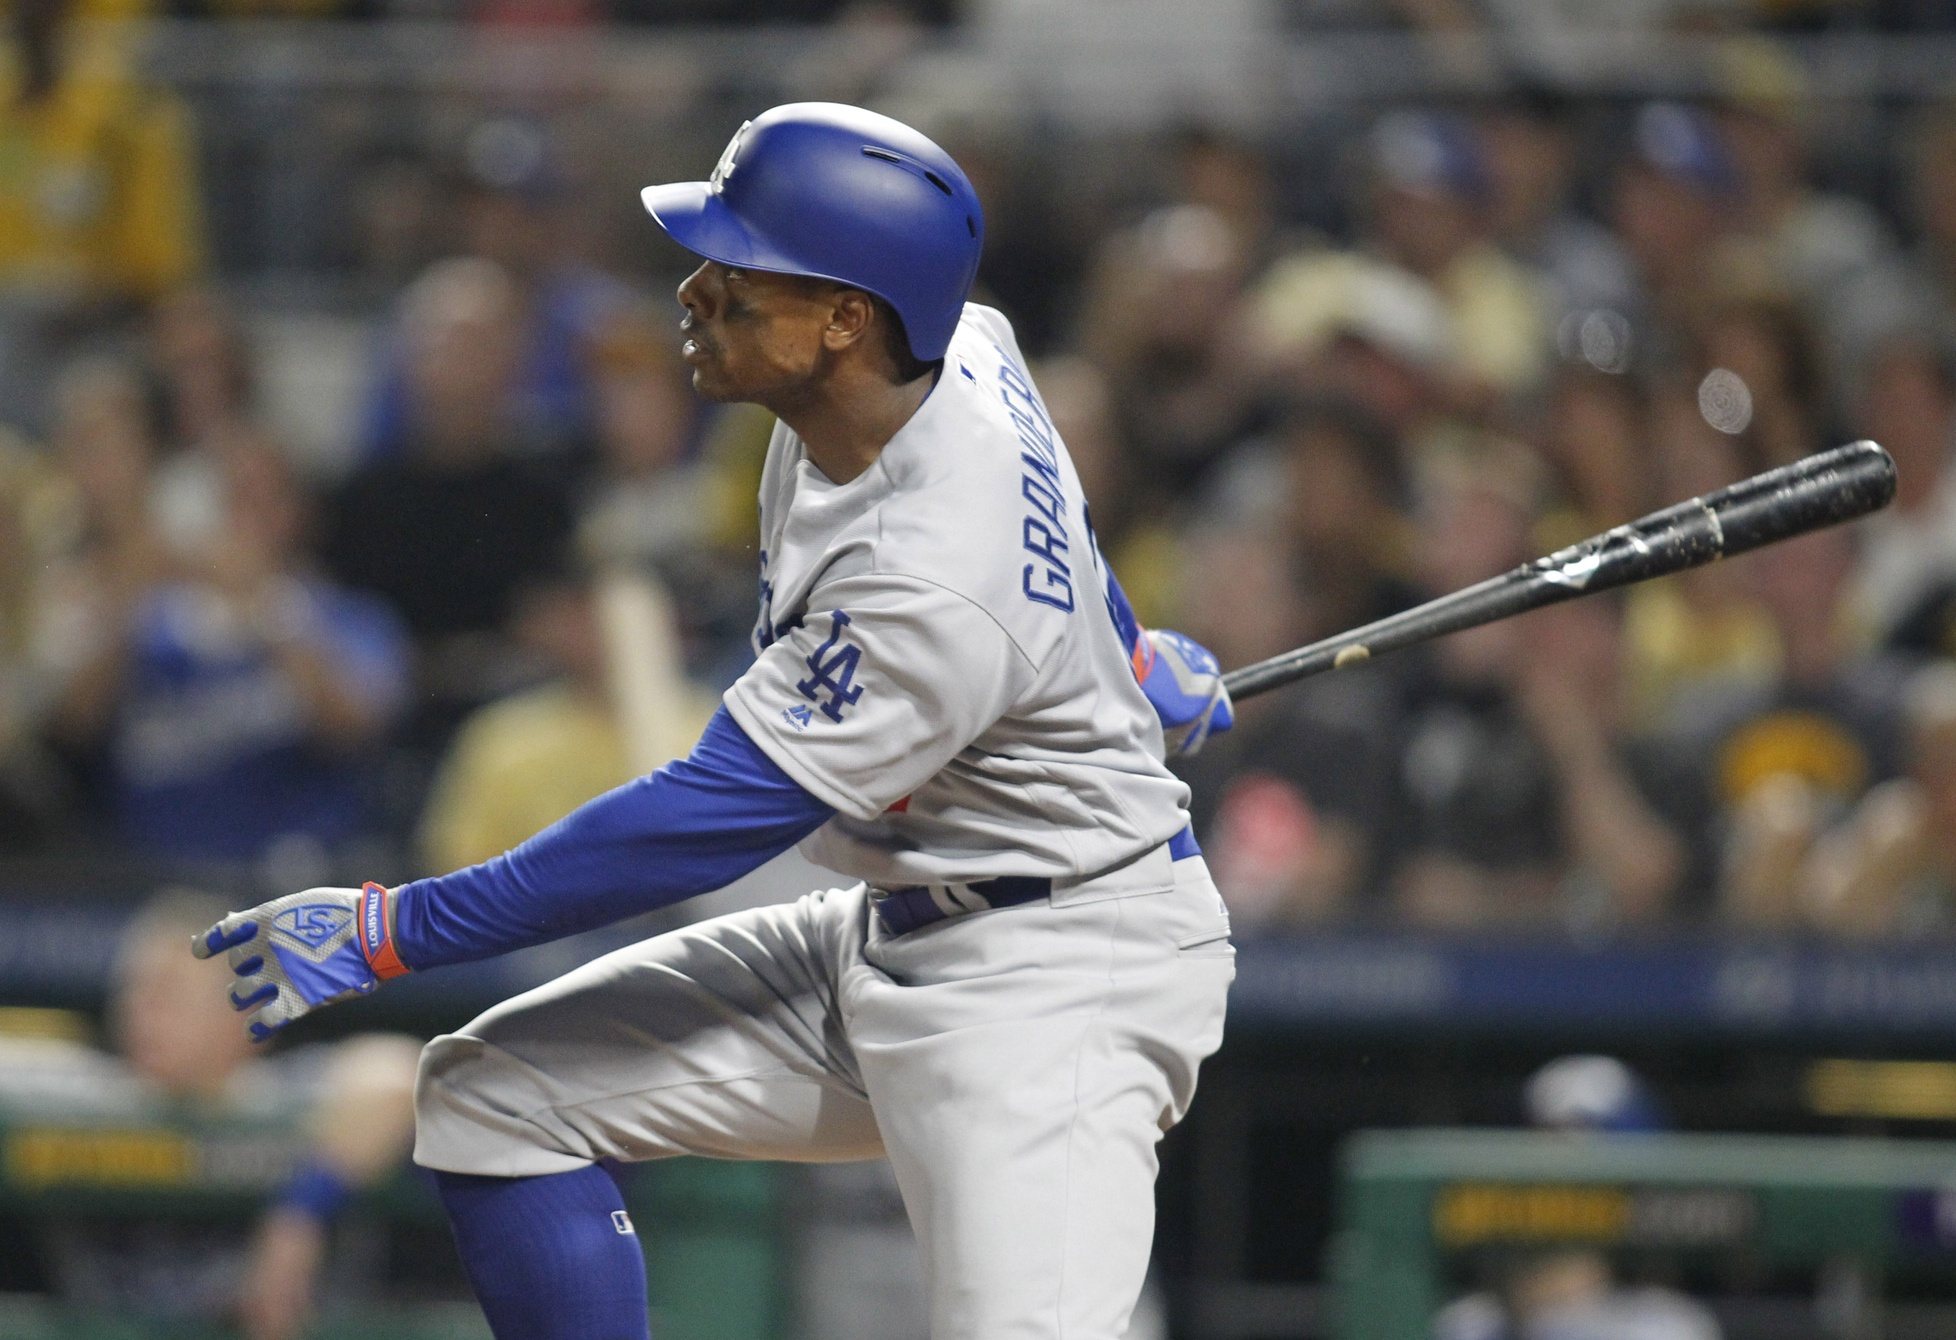 Outfielder Curtis Granderson to join Blue Jays on one-year deal